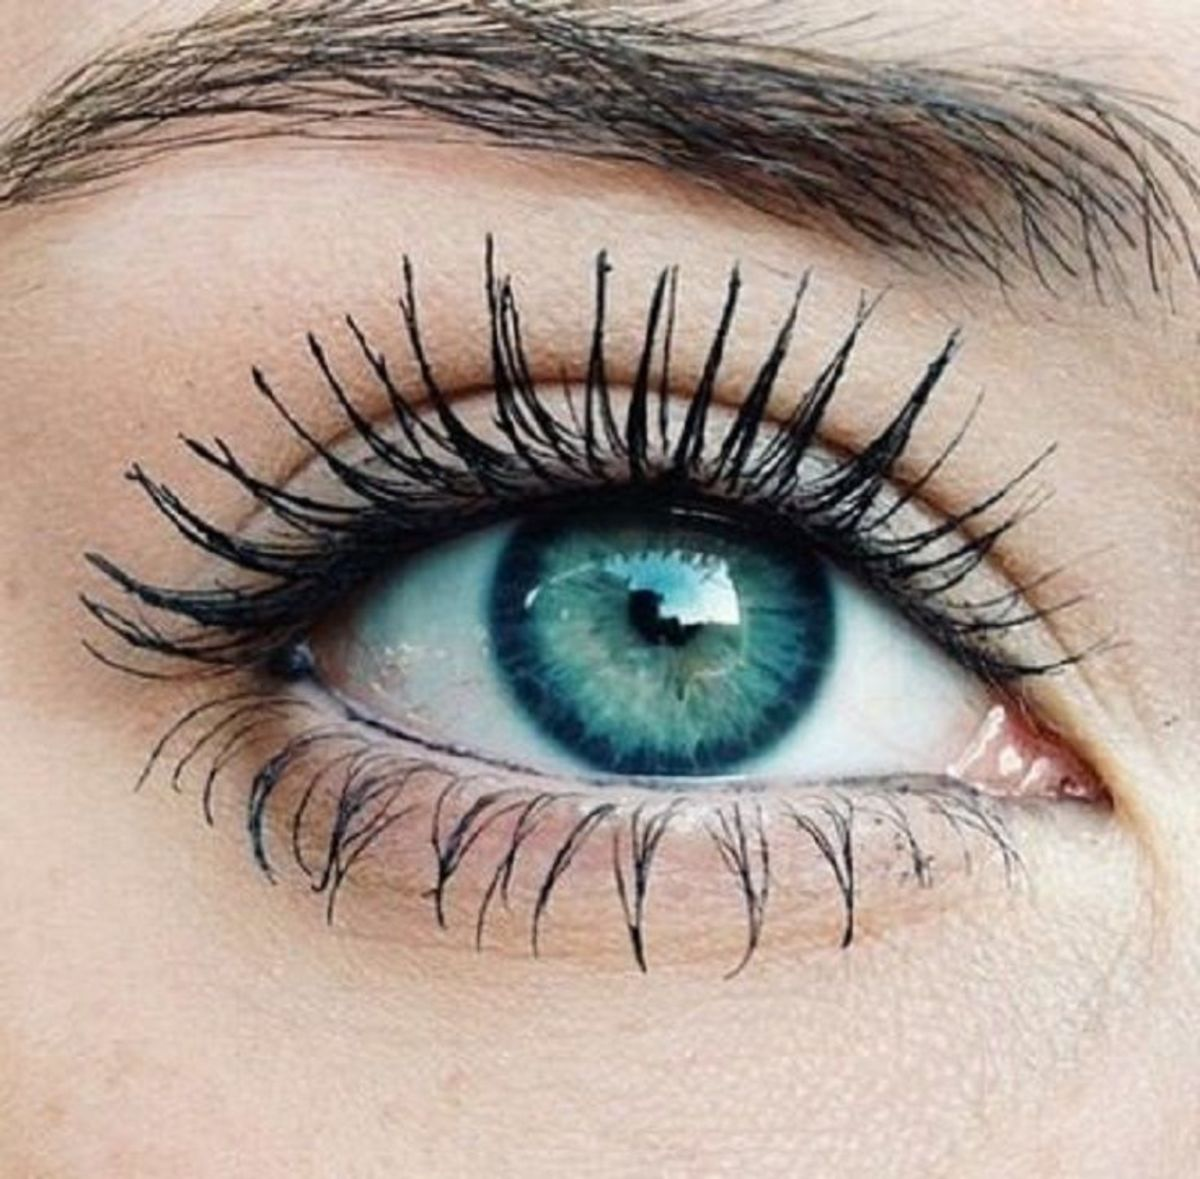 Review of 3 Maybelline Mascaras: Falsies, Full N' Soft, and Lash Stiletto Waterproof